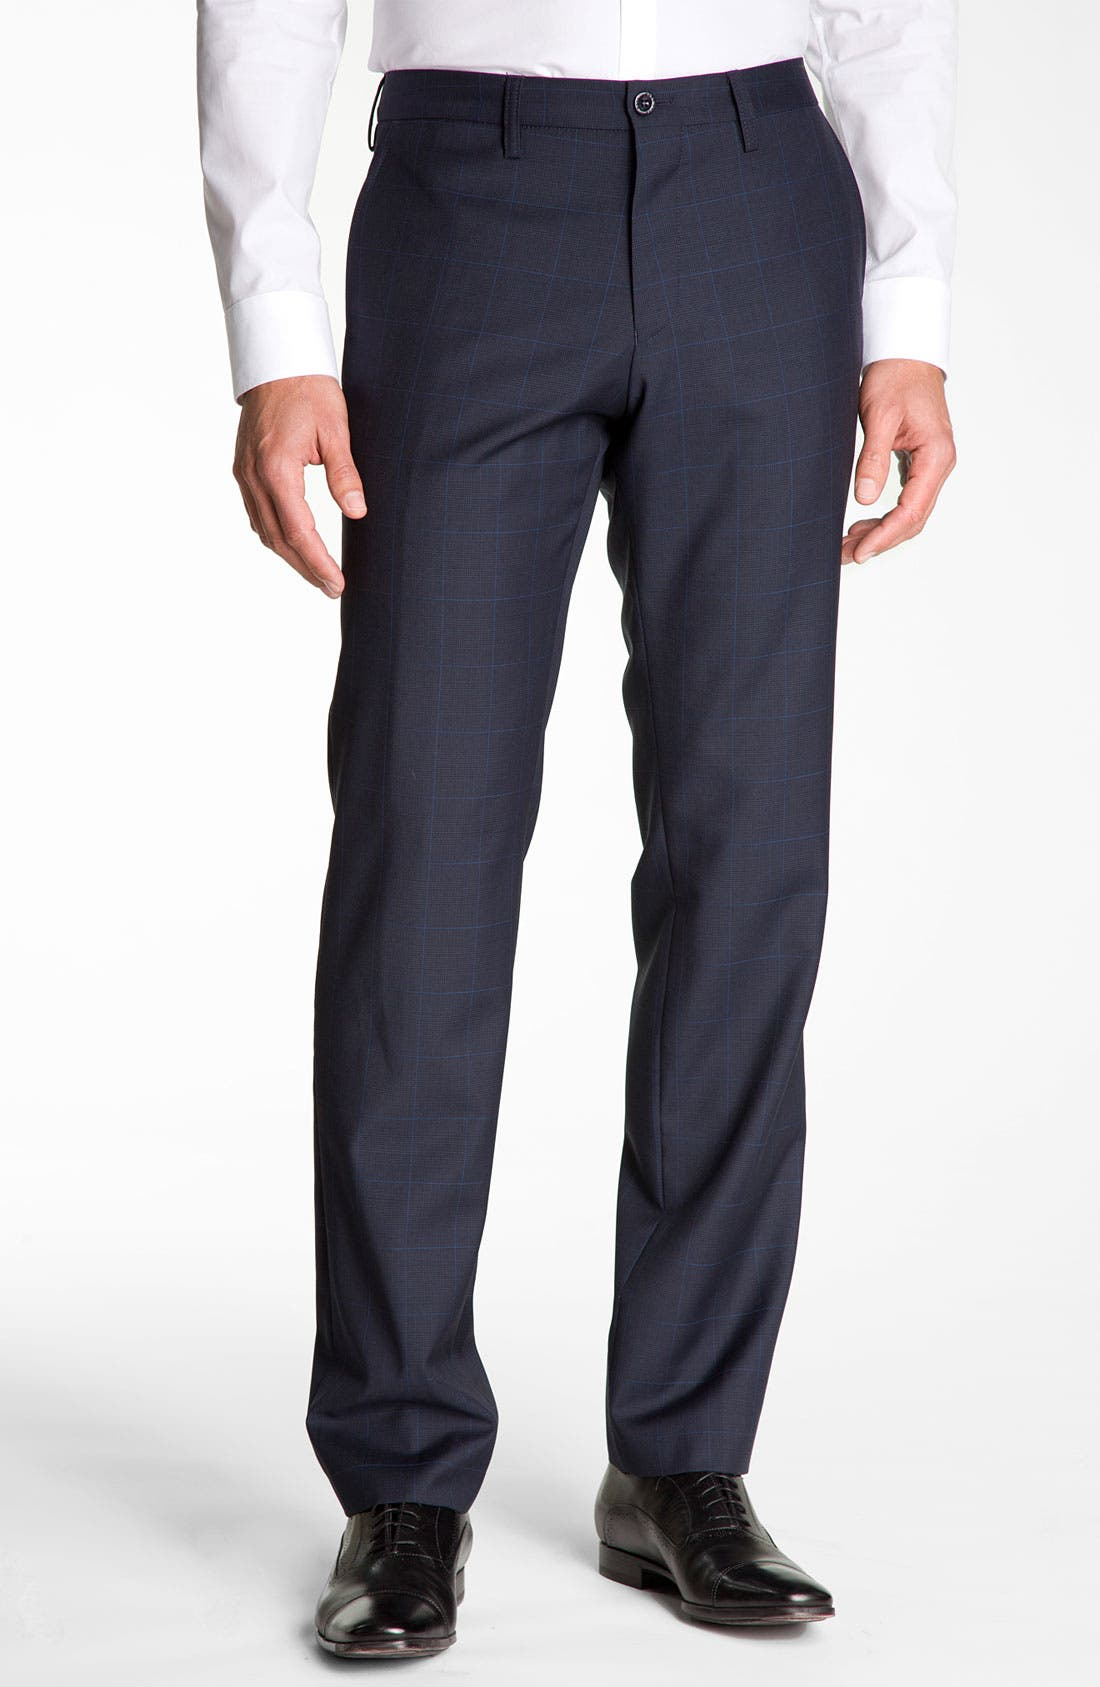 Main Image - BOSS Black 'Crigan' Patterned Flat Front Wool Trousers